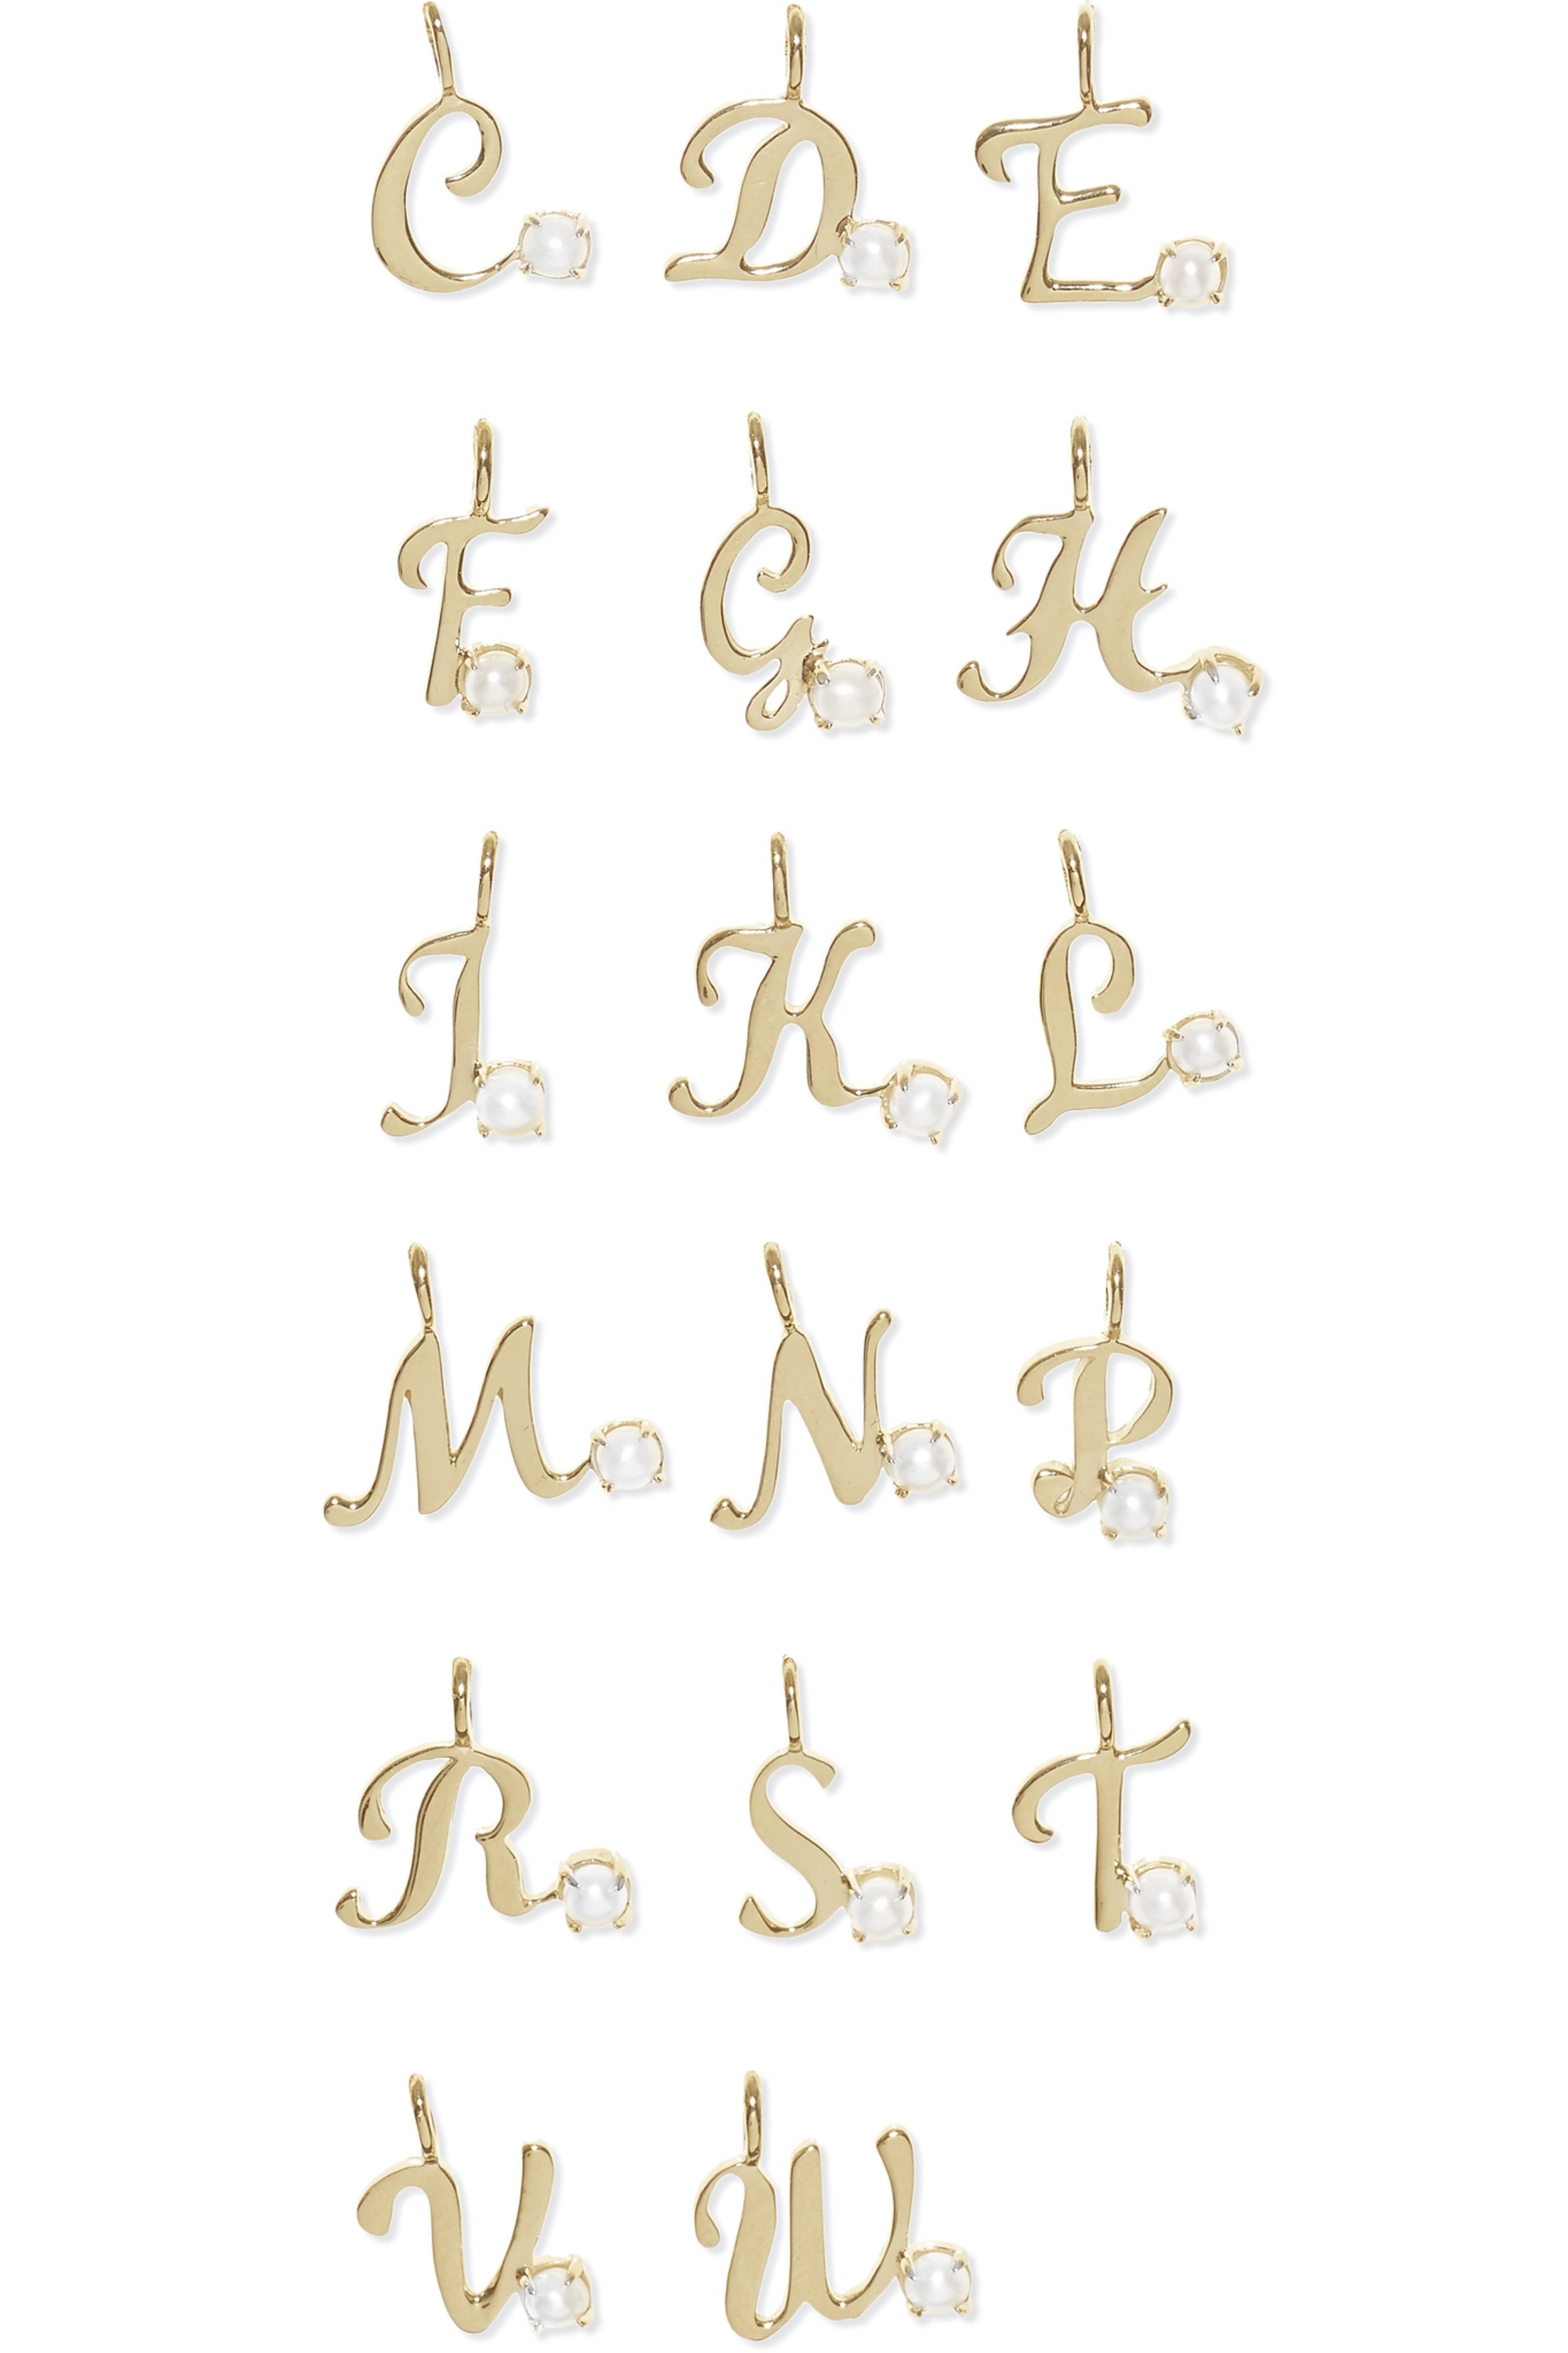 STONE AND STRAND Alphabet 14-karat gold pearl necklace